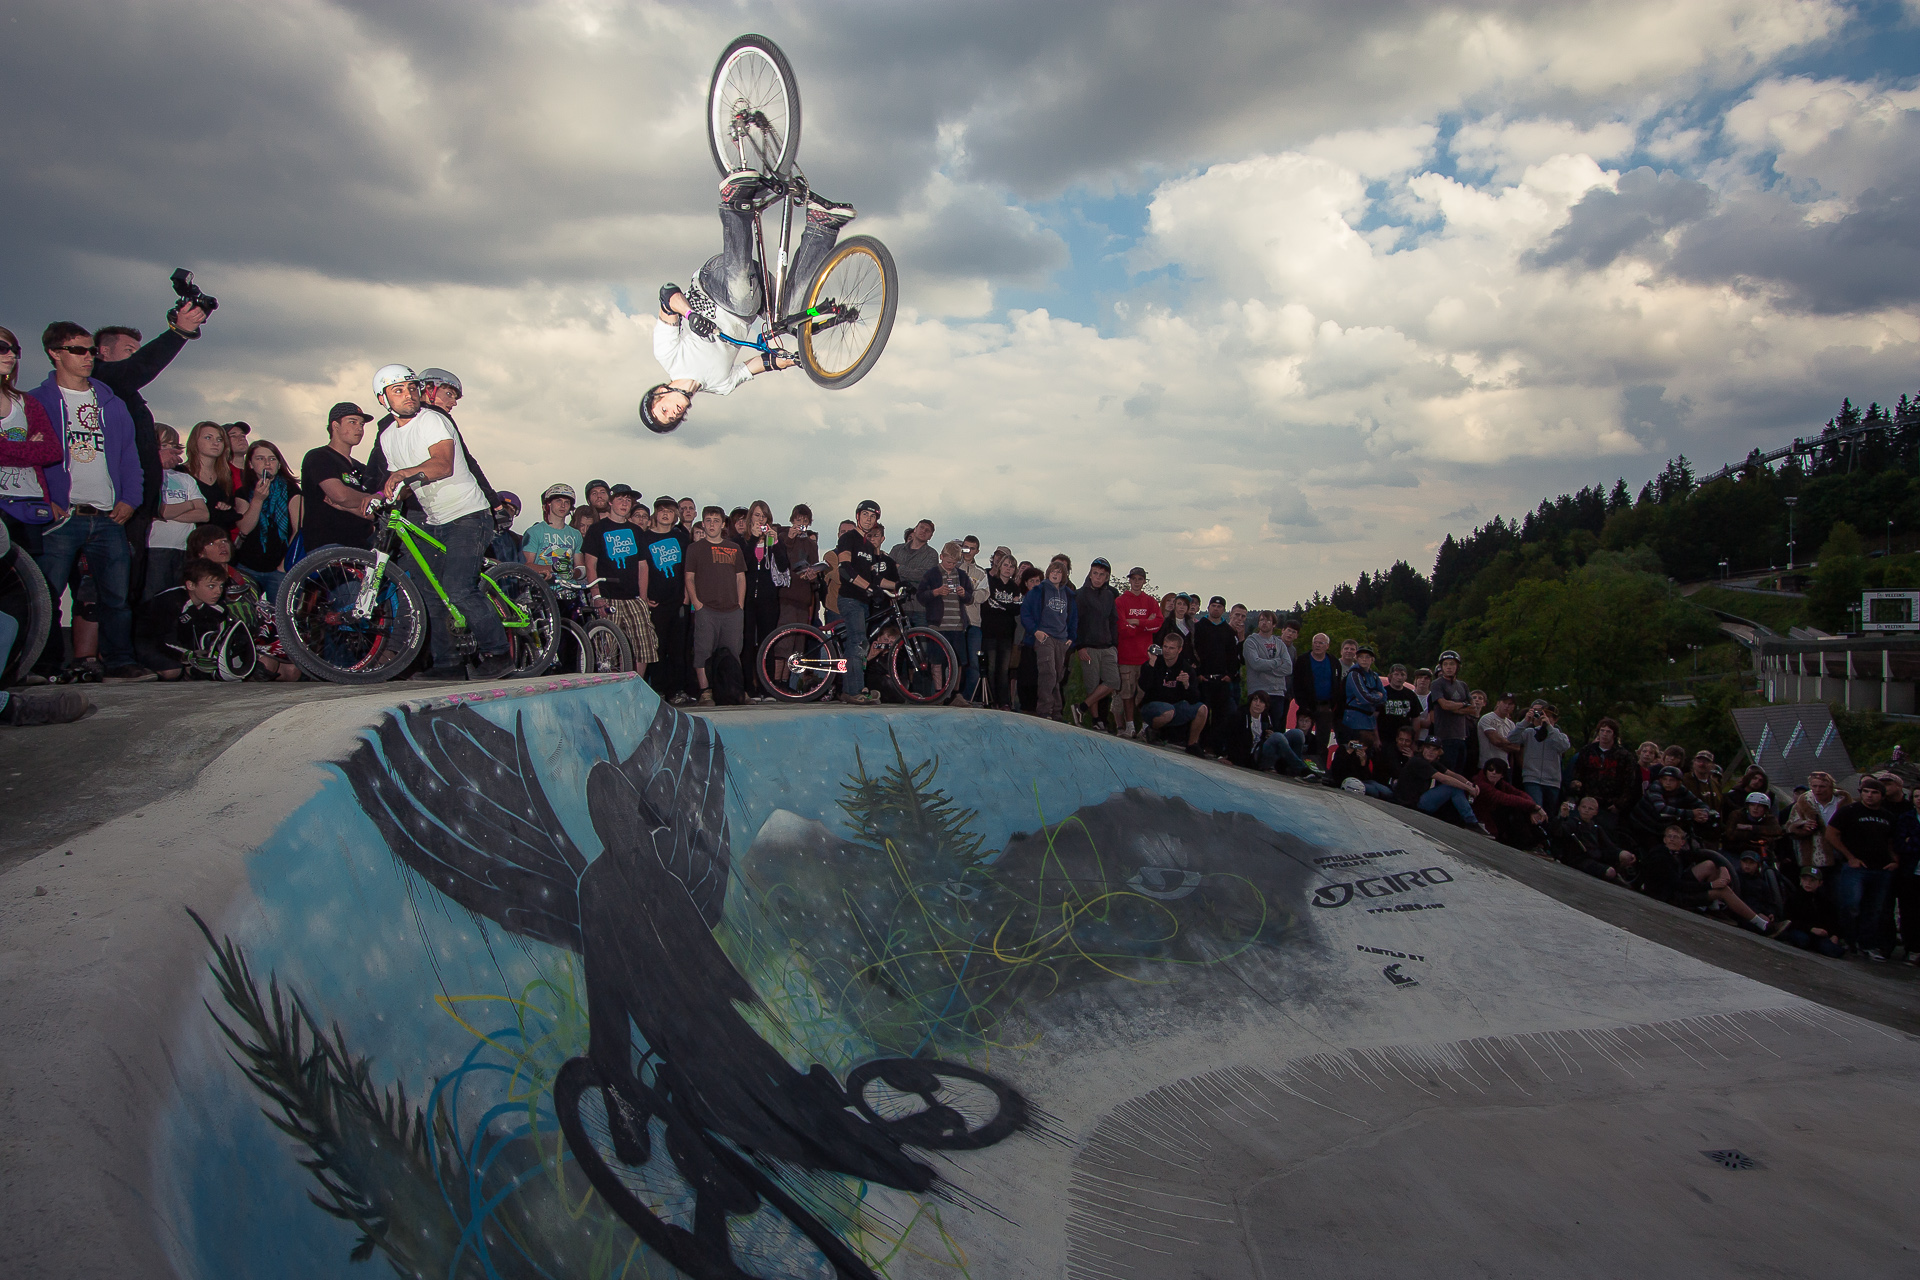 Action_Sport_Flair_mtb_winterberg by Felix Gemein.